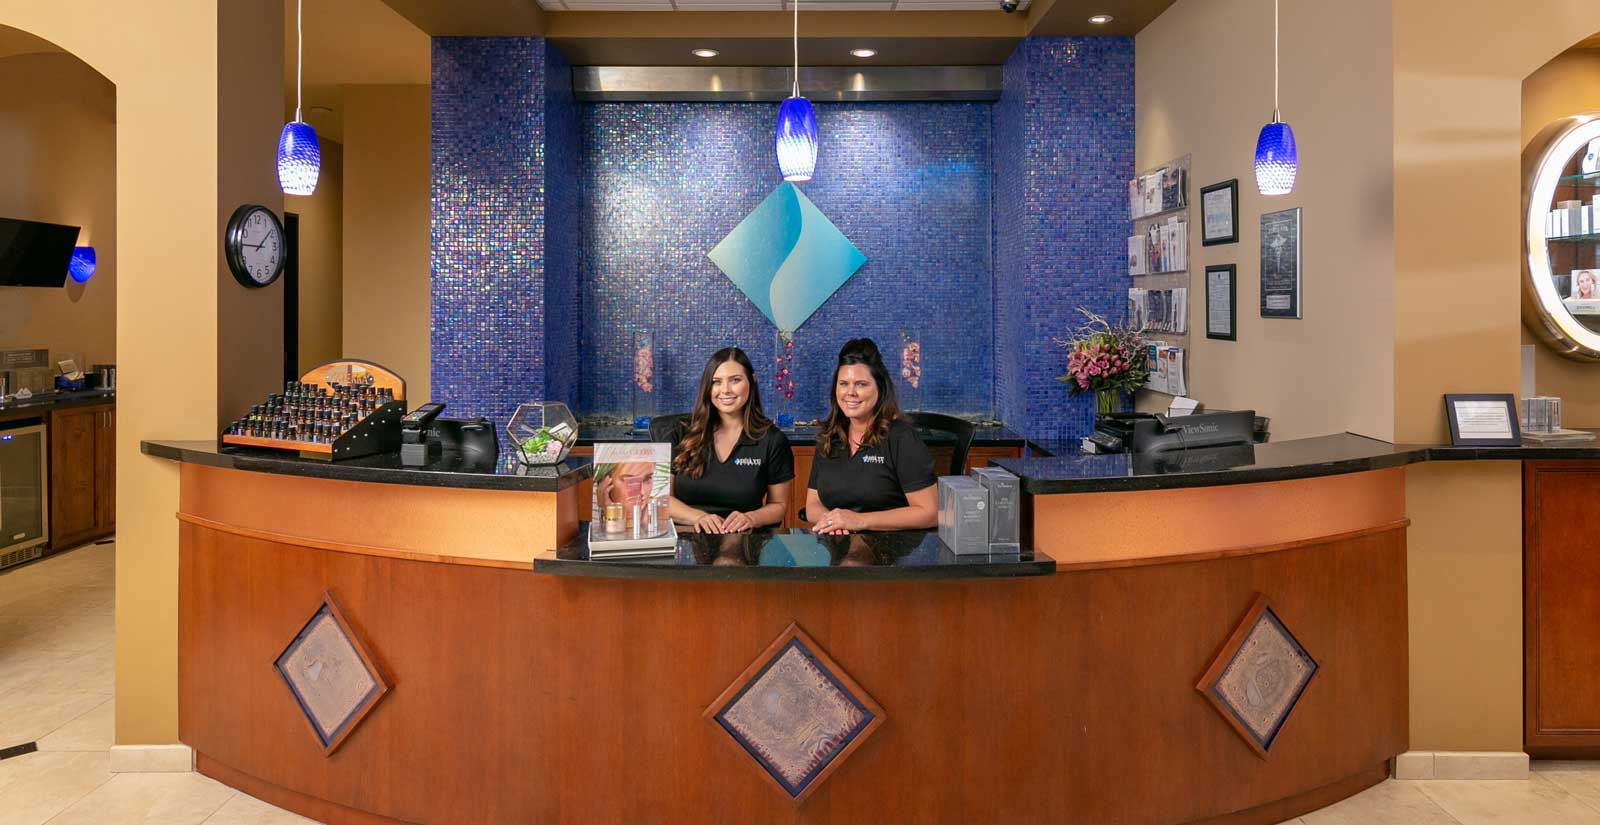 deja-vu-medspa-front-desk-with-girls